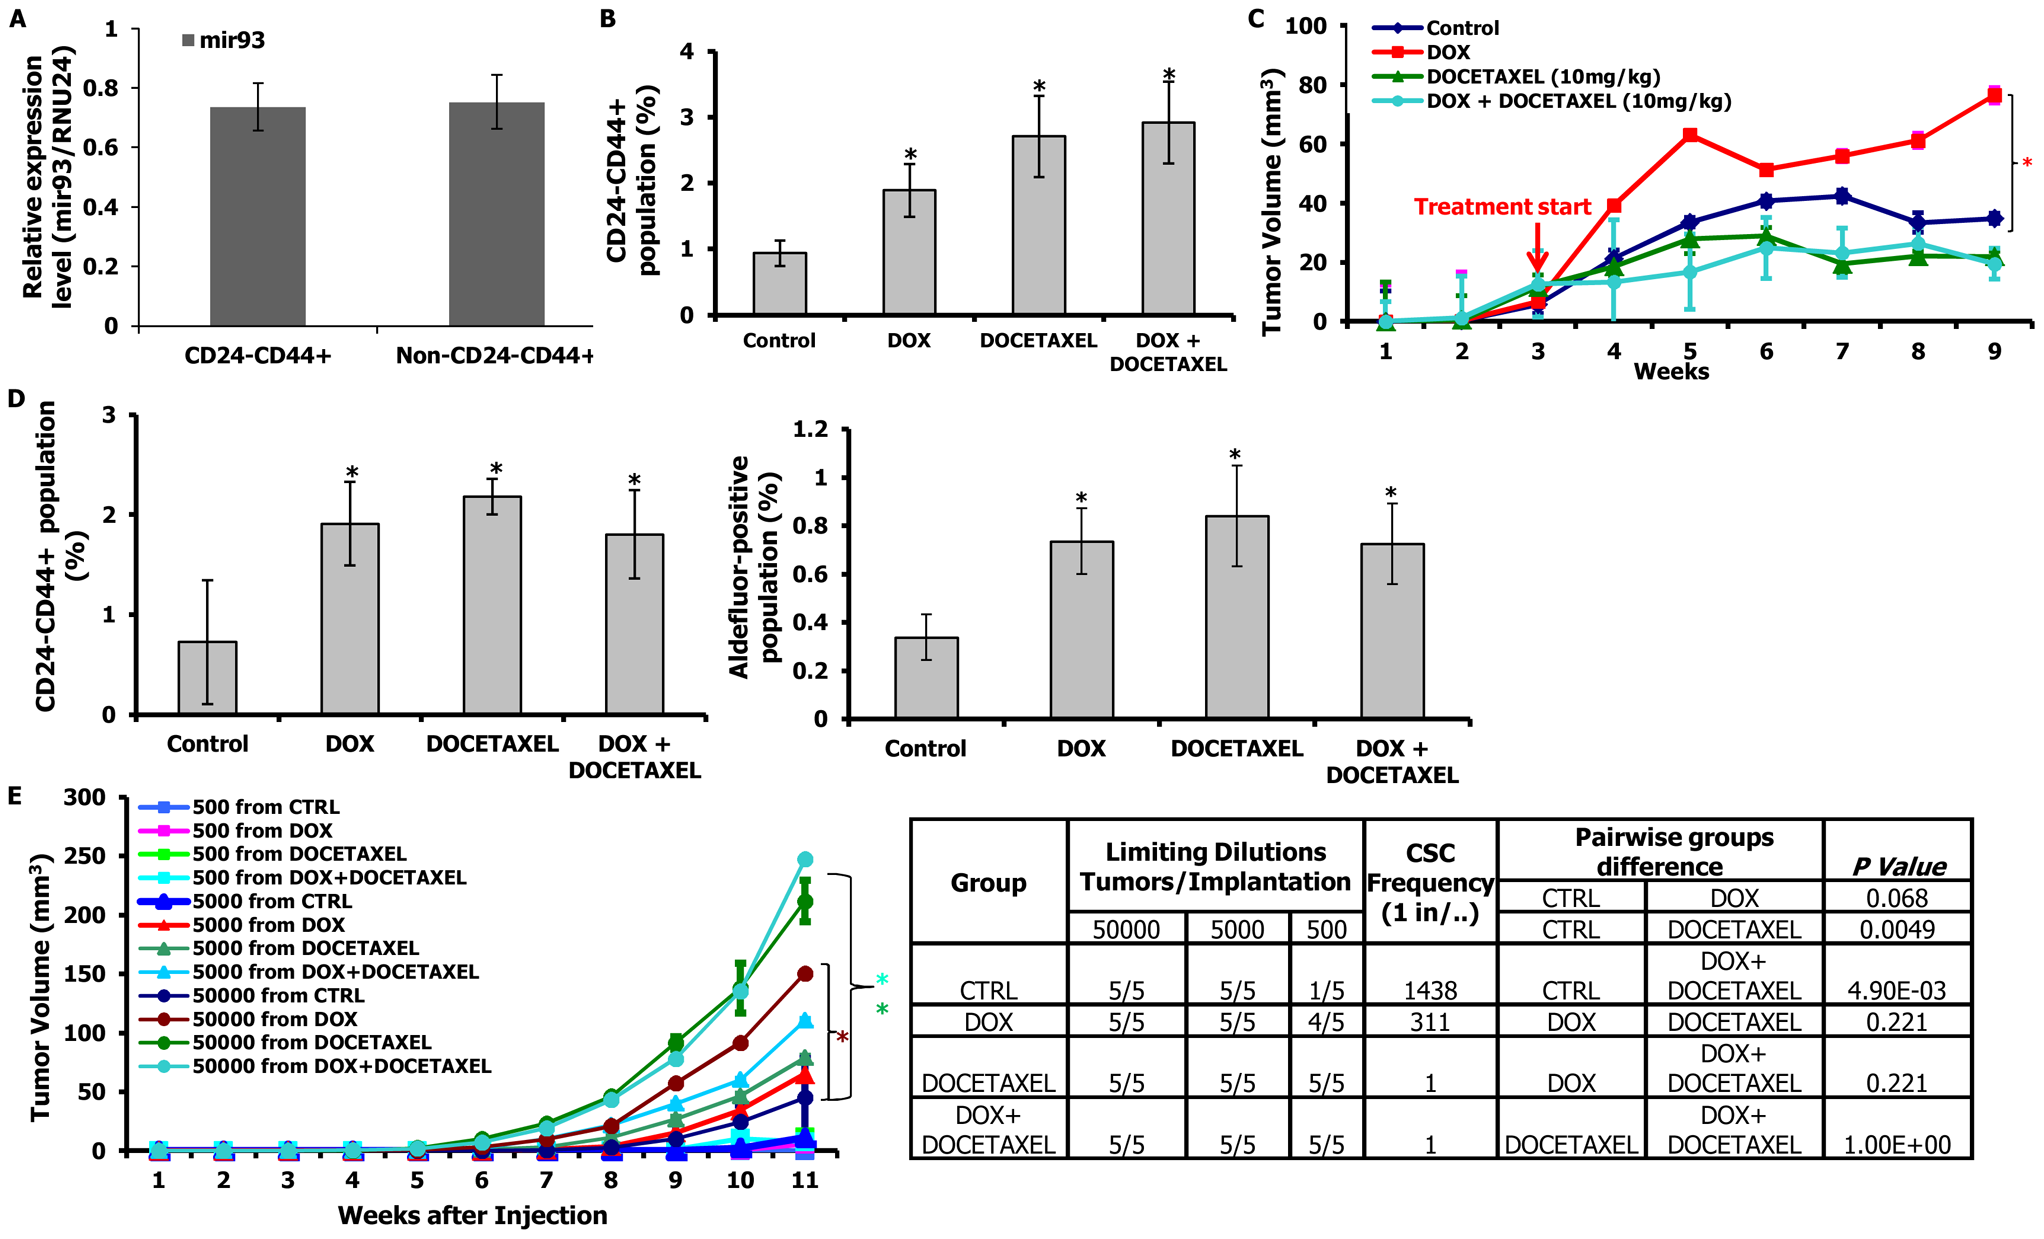 mir-93 promotes tumor growth by increasing CSCs in MCF7 cells.